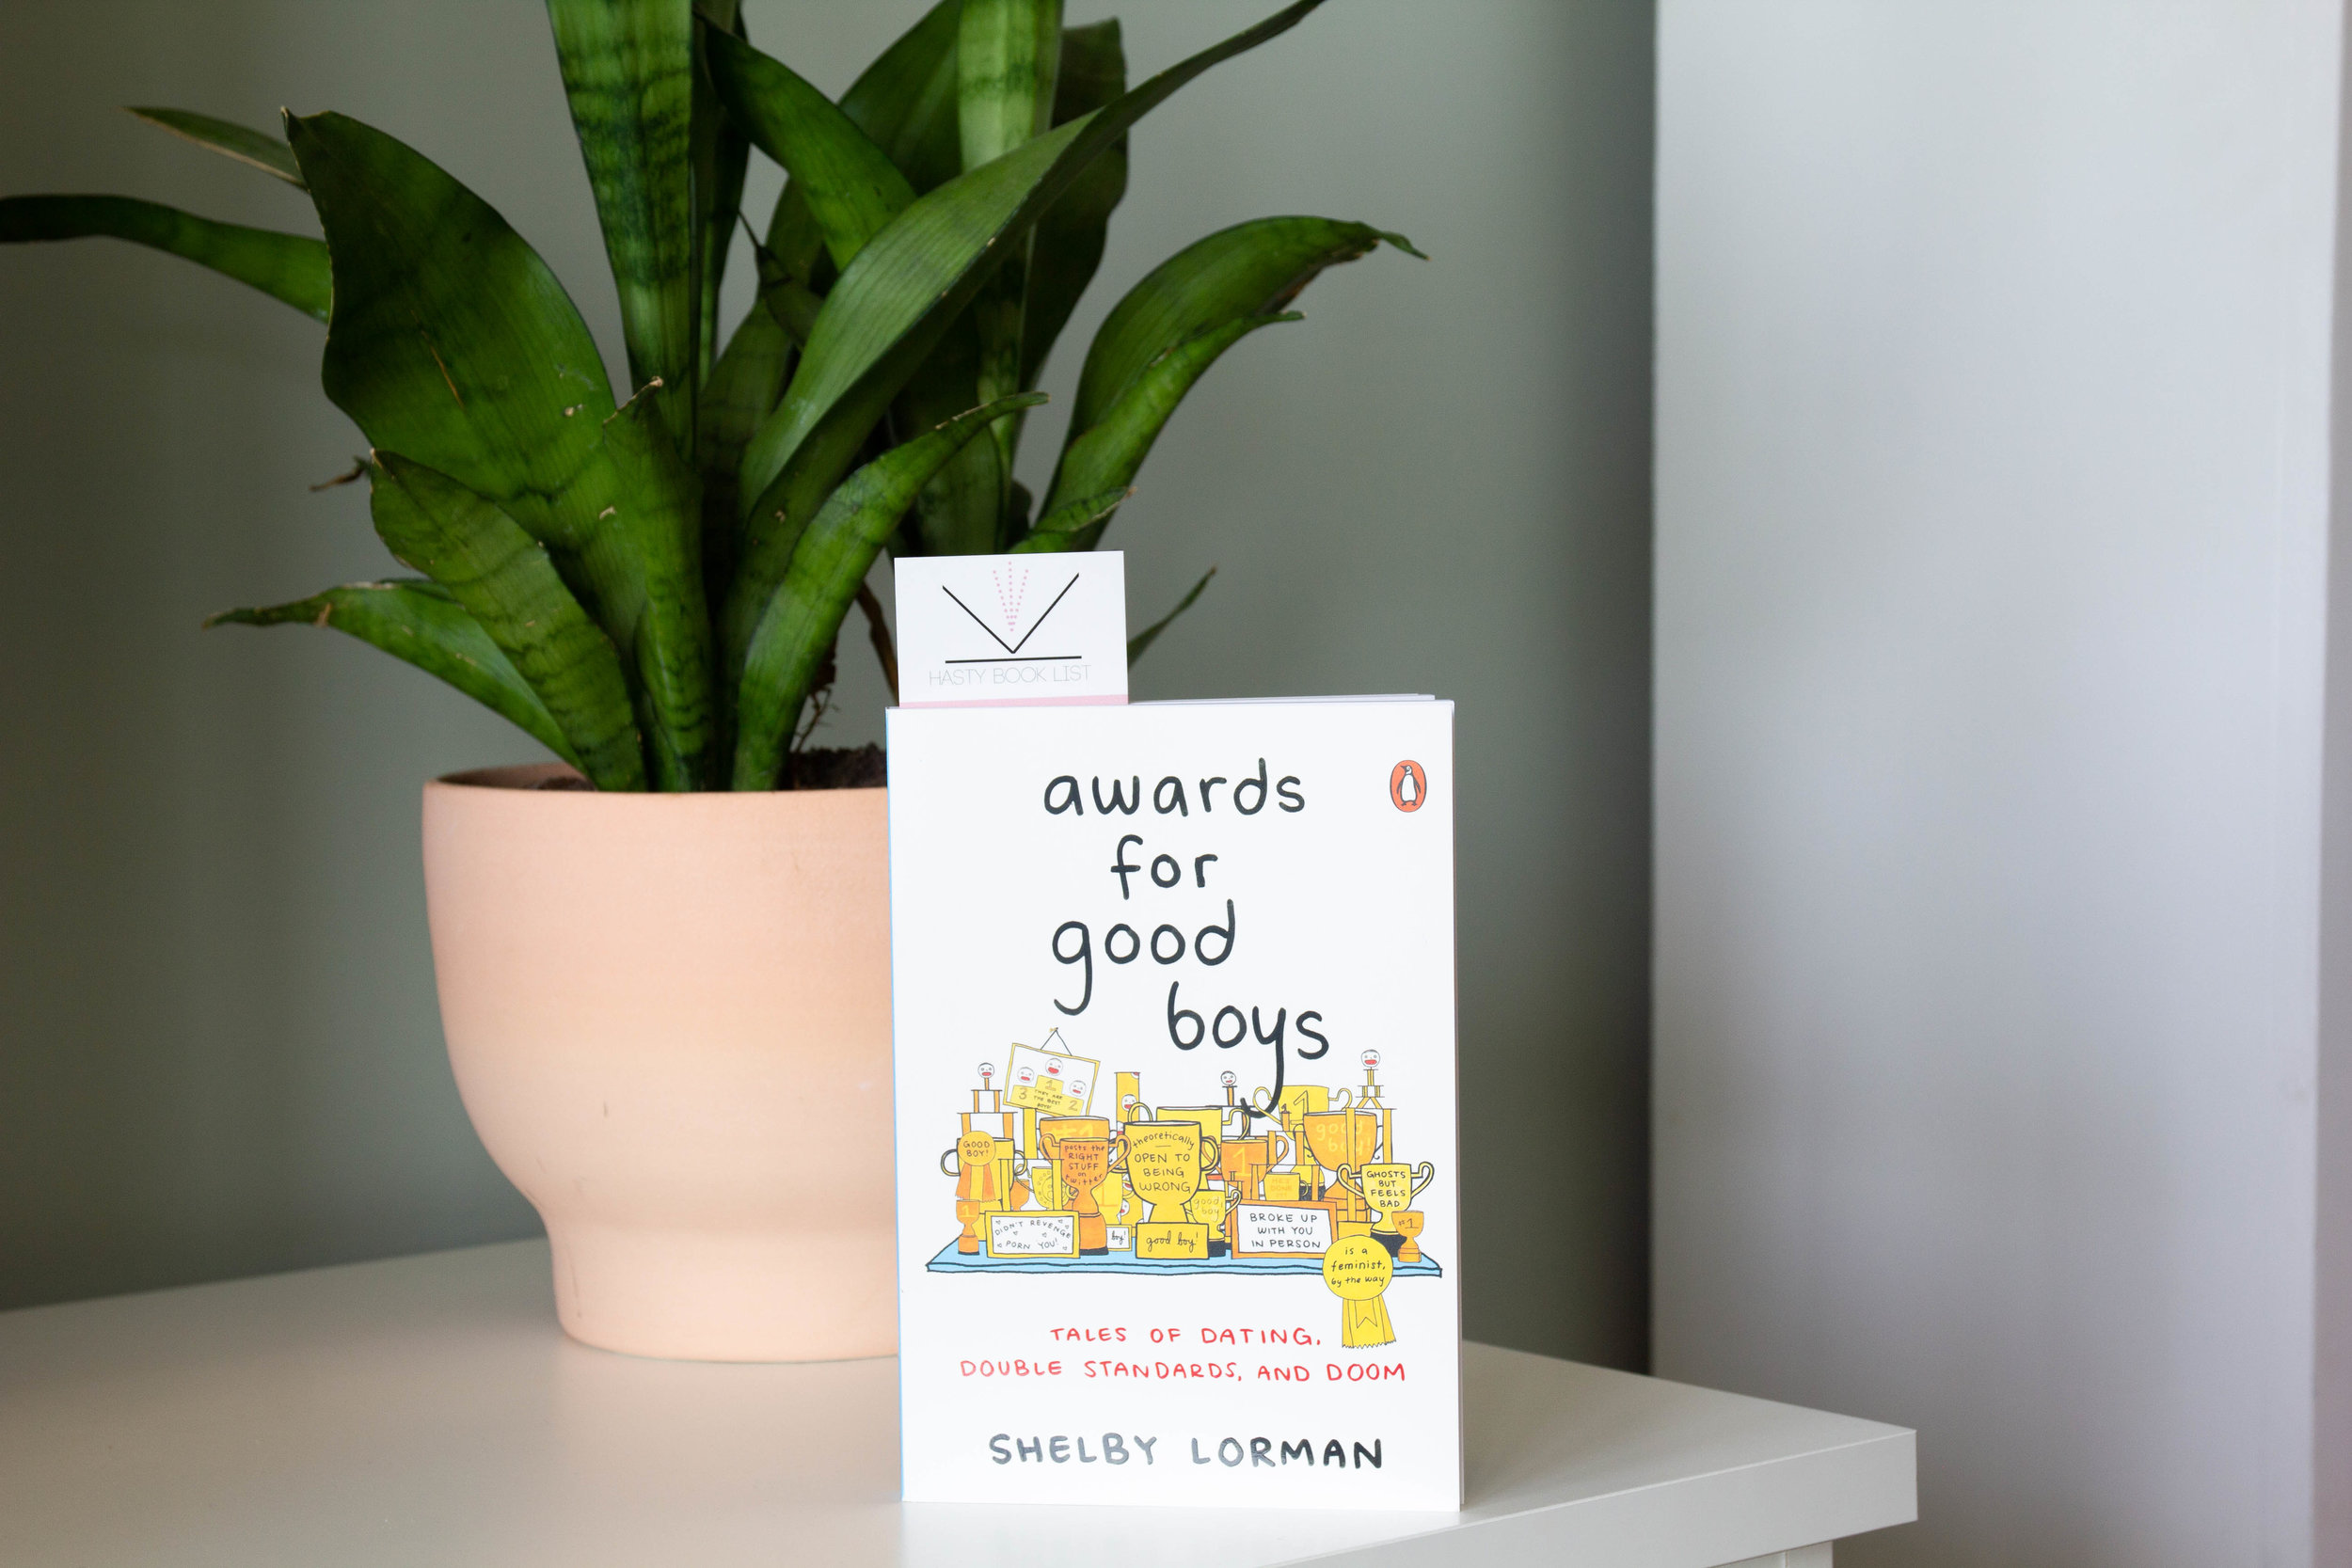 Awards for Good Boys by Shelby Lorman - A wickedly funny illustrated look at living and dating in a patriarchal culture that celebrates men for displaying the bare minimum of human decency